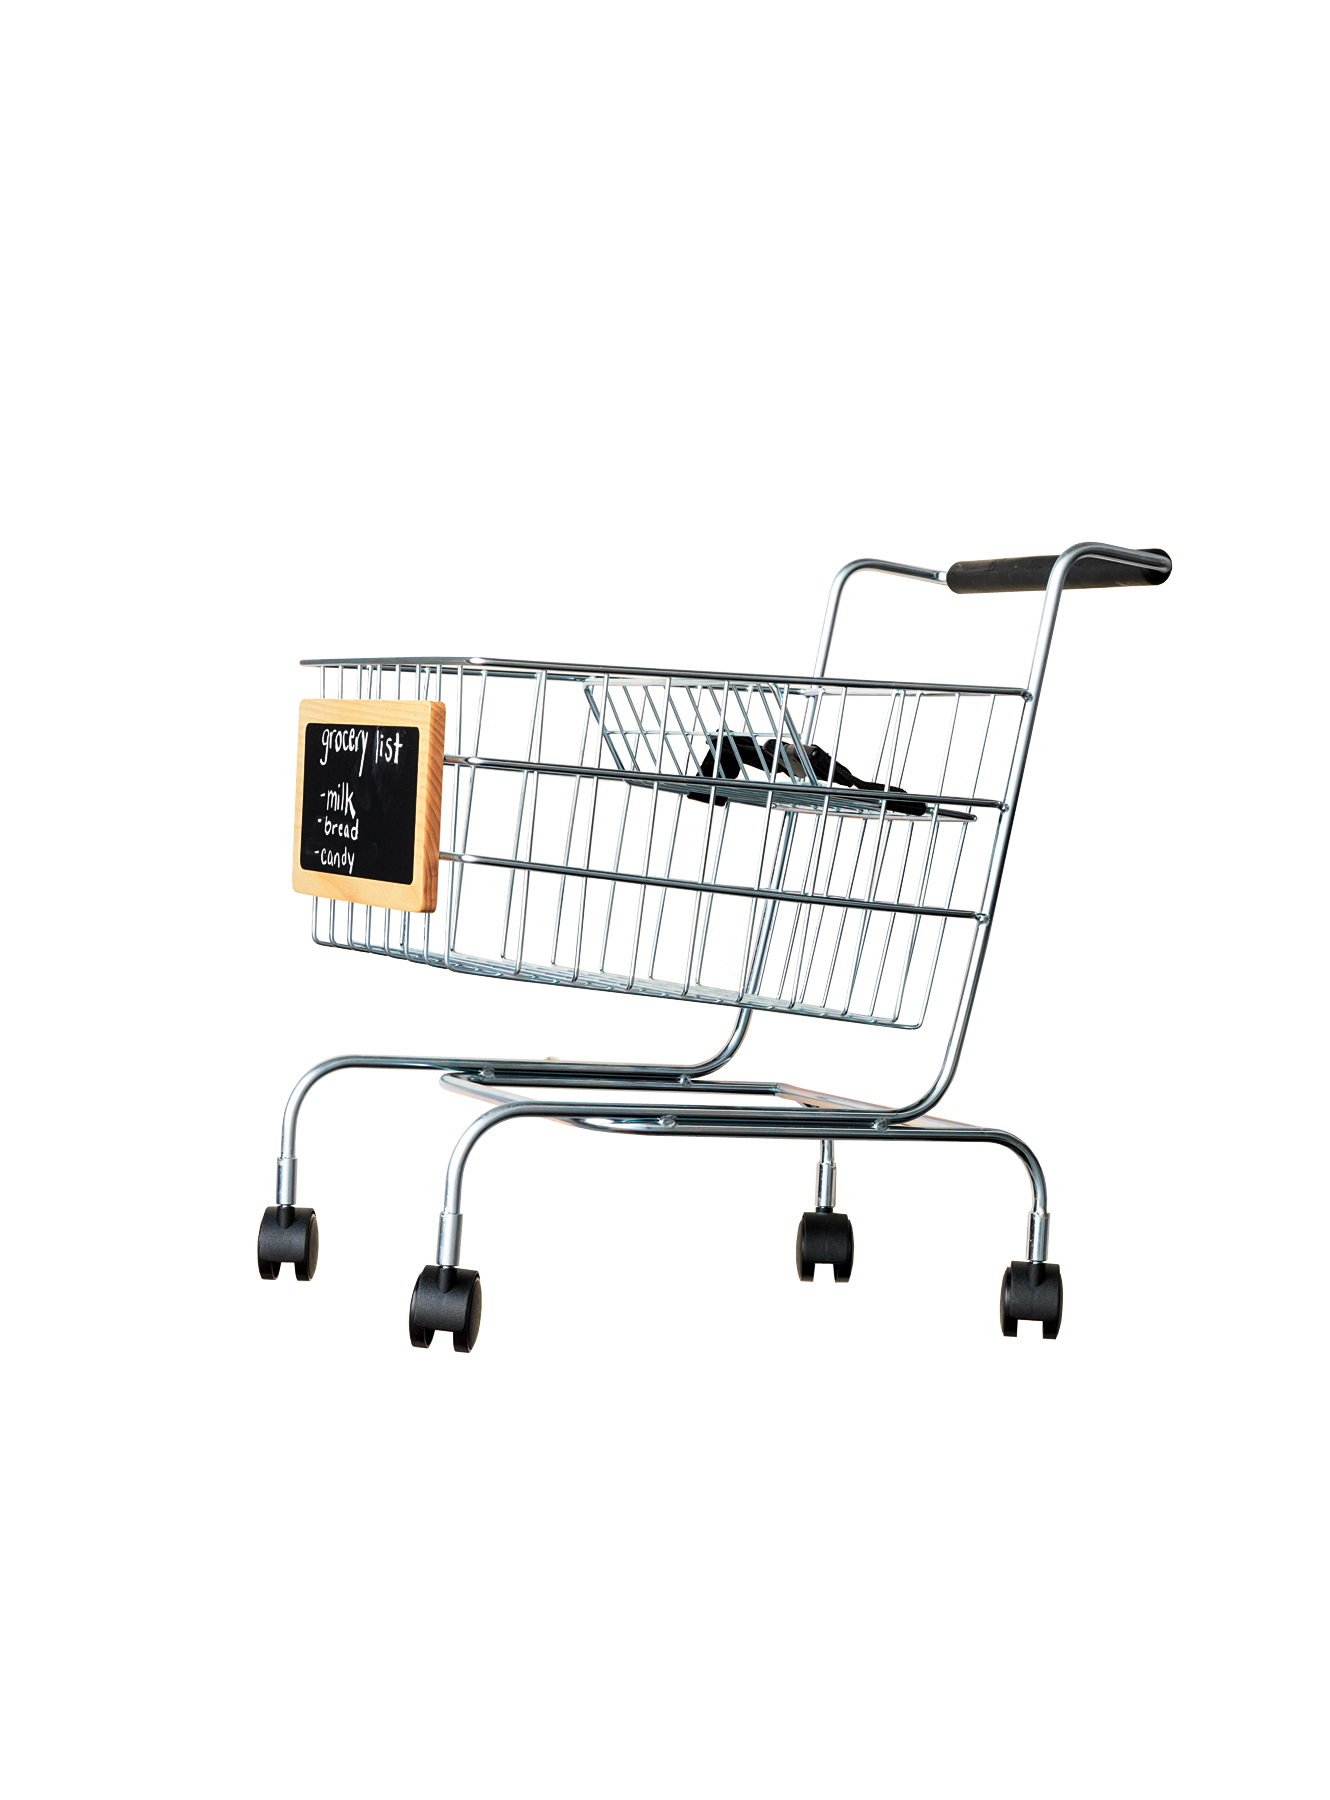 Toy metal cart